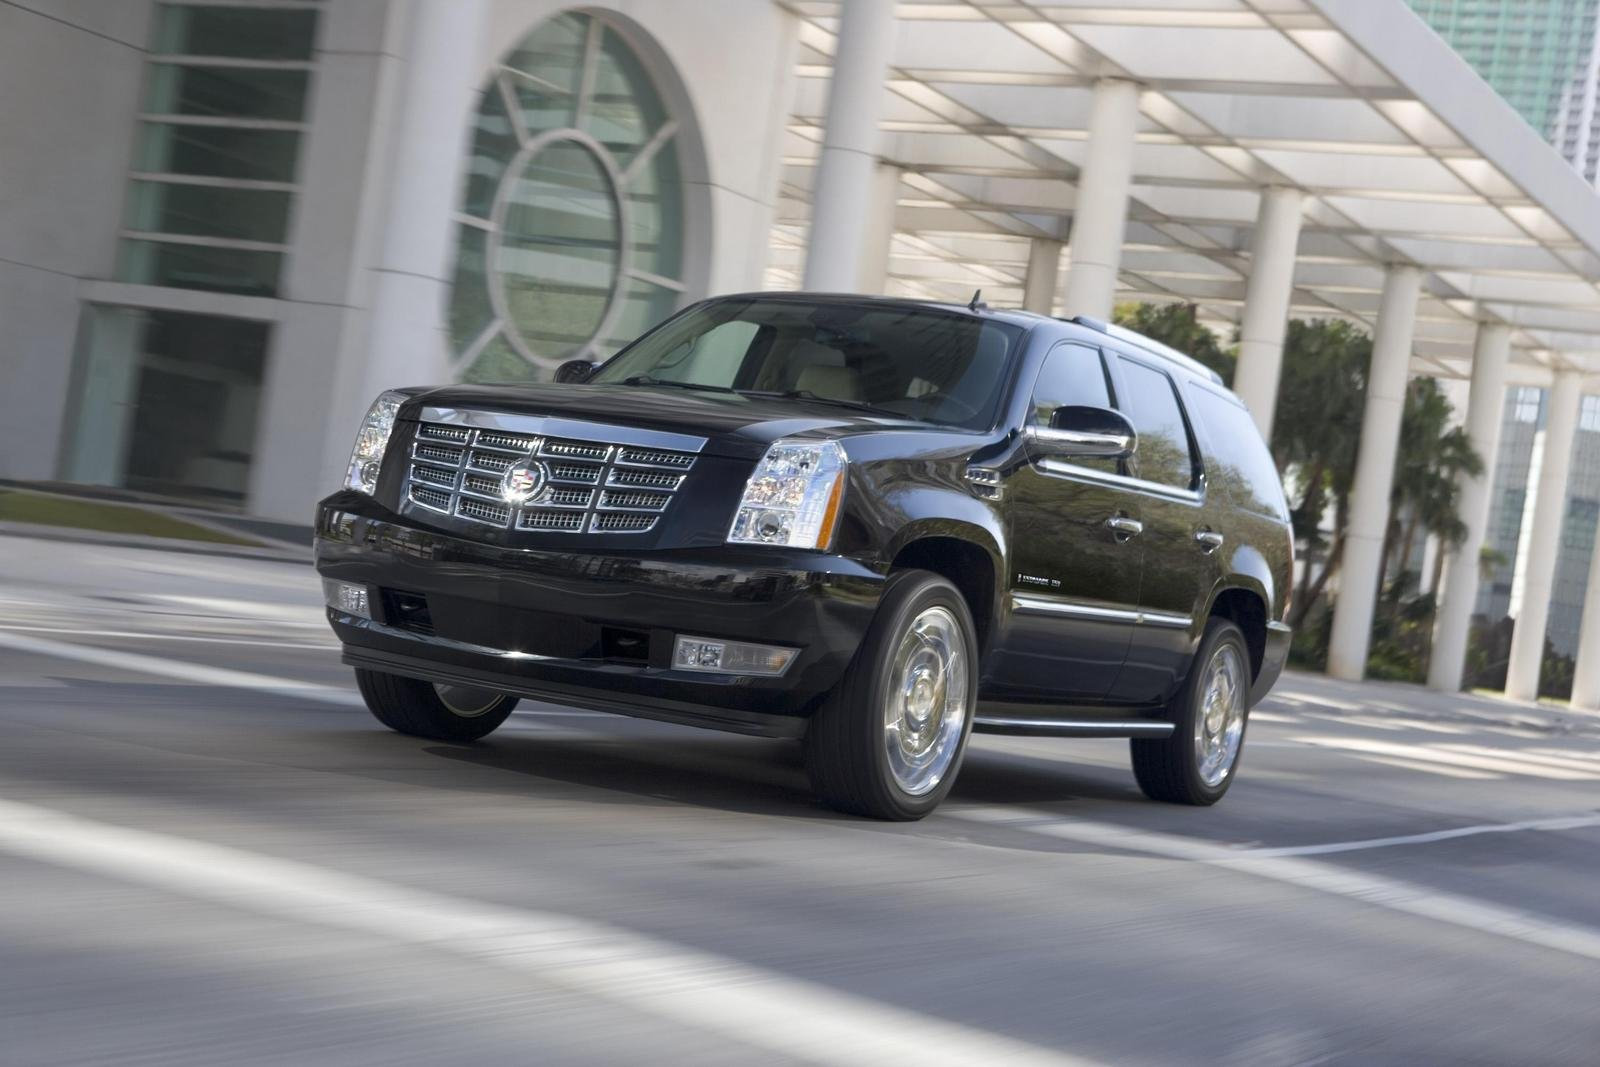 2007 cadillac escalade esv review gallery top speed. Black Bedroom Furniture Sets. Home Design Ideas